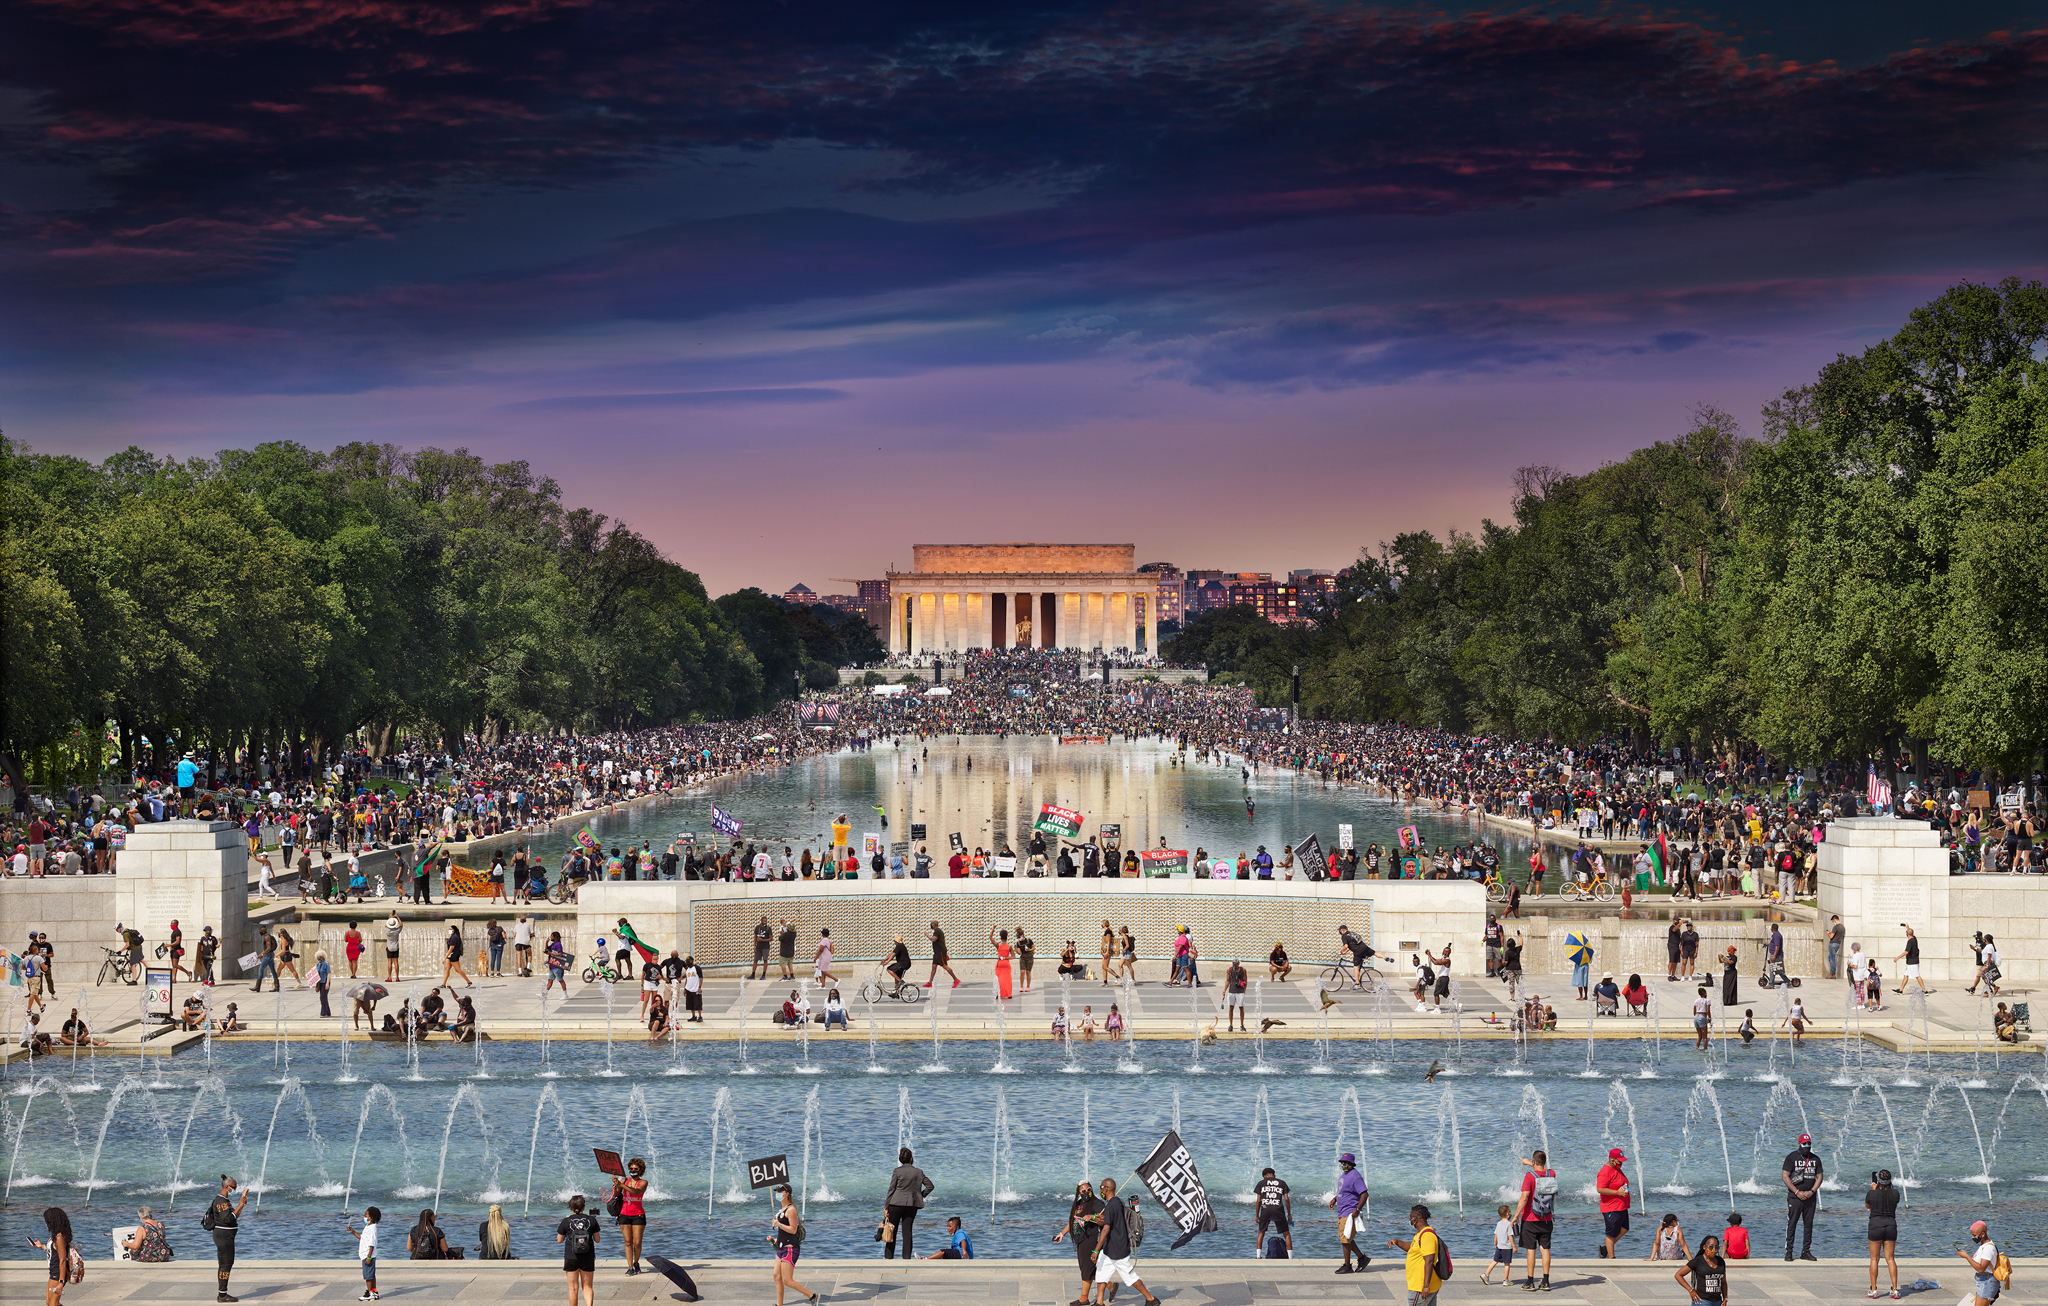 Picture of crowds of people walking along the national mall at dusk